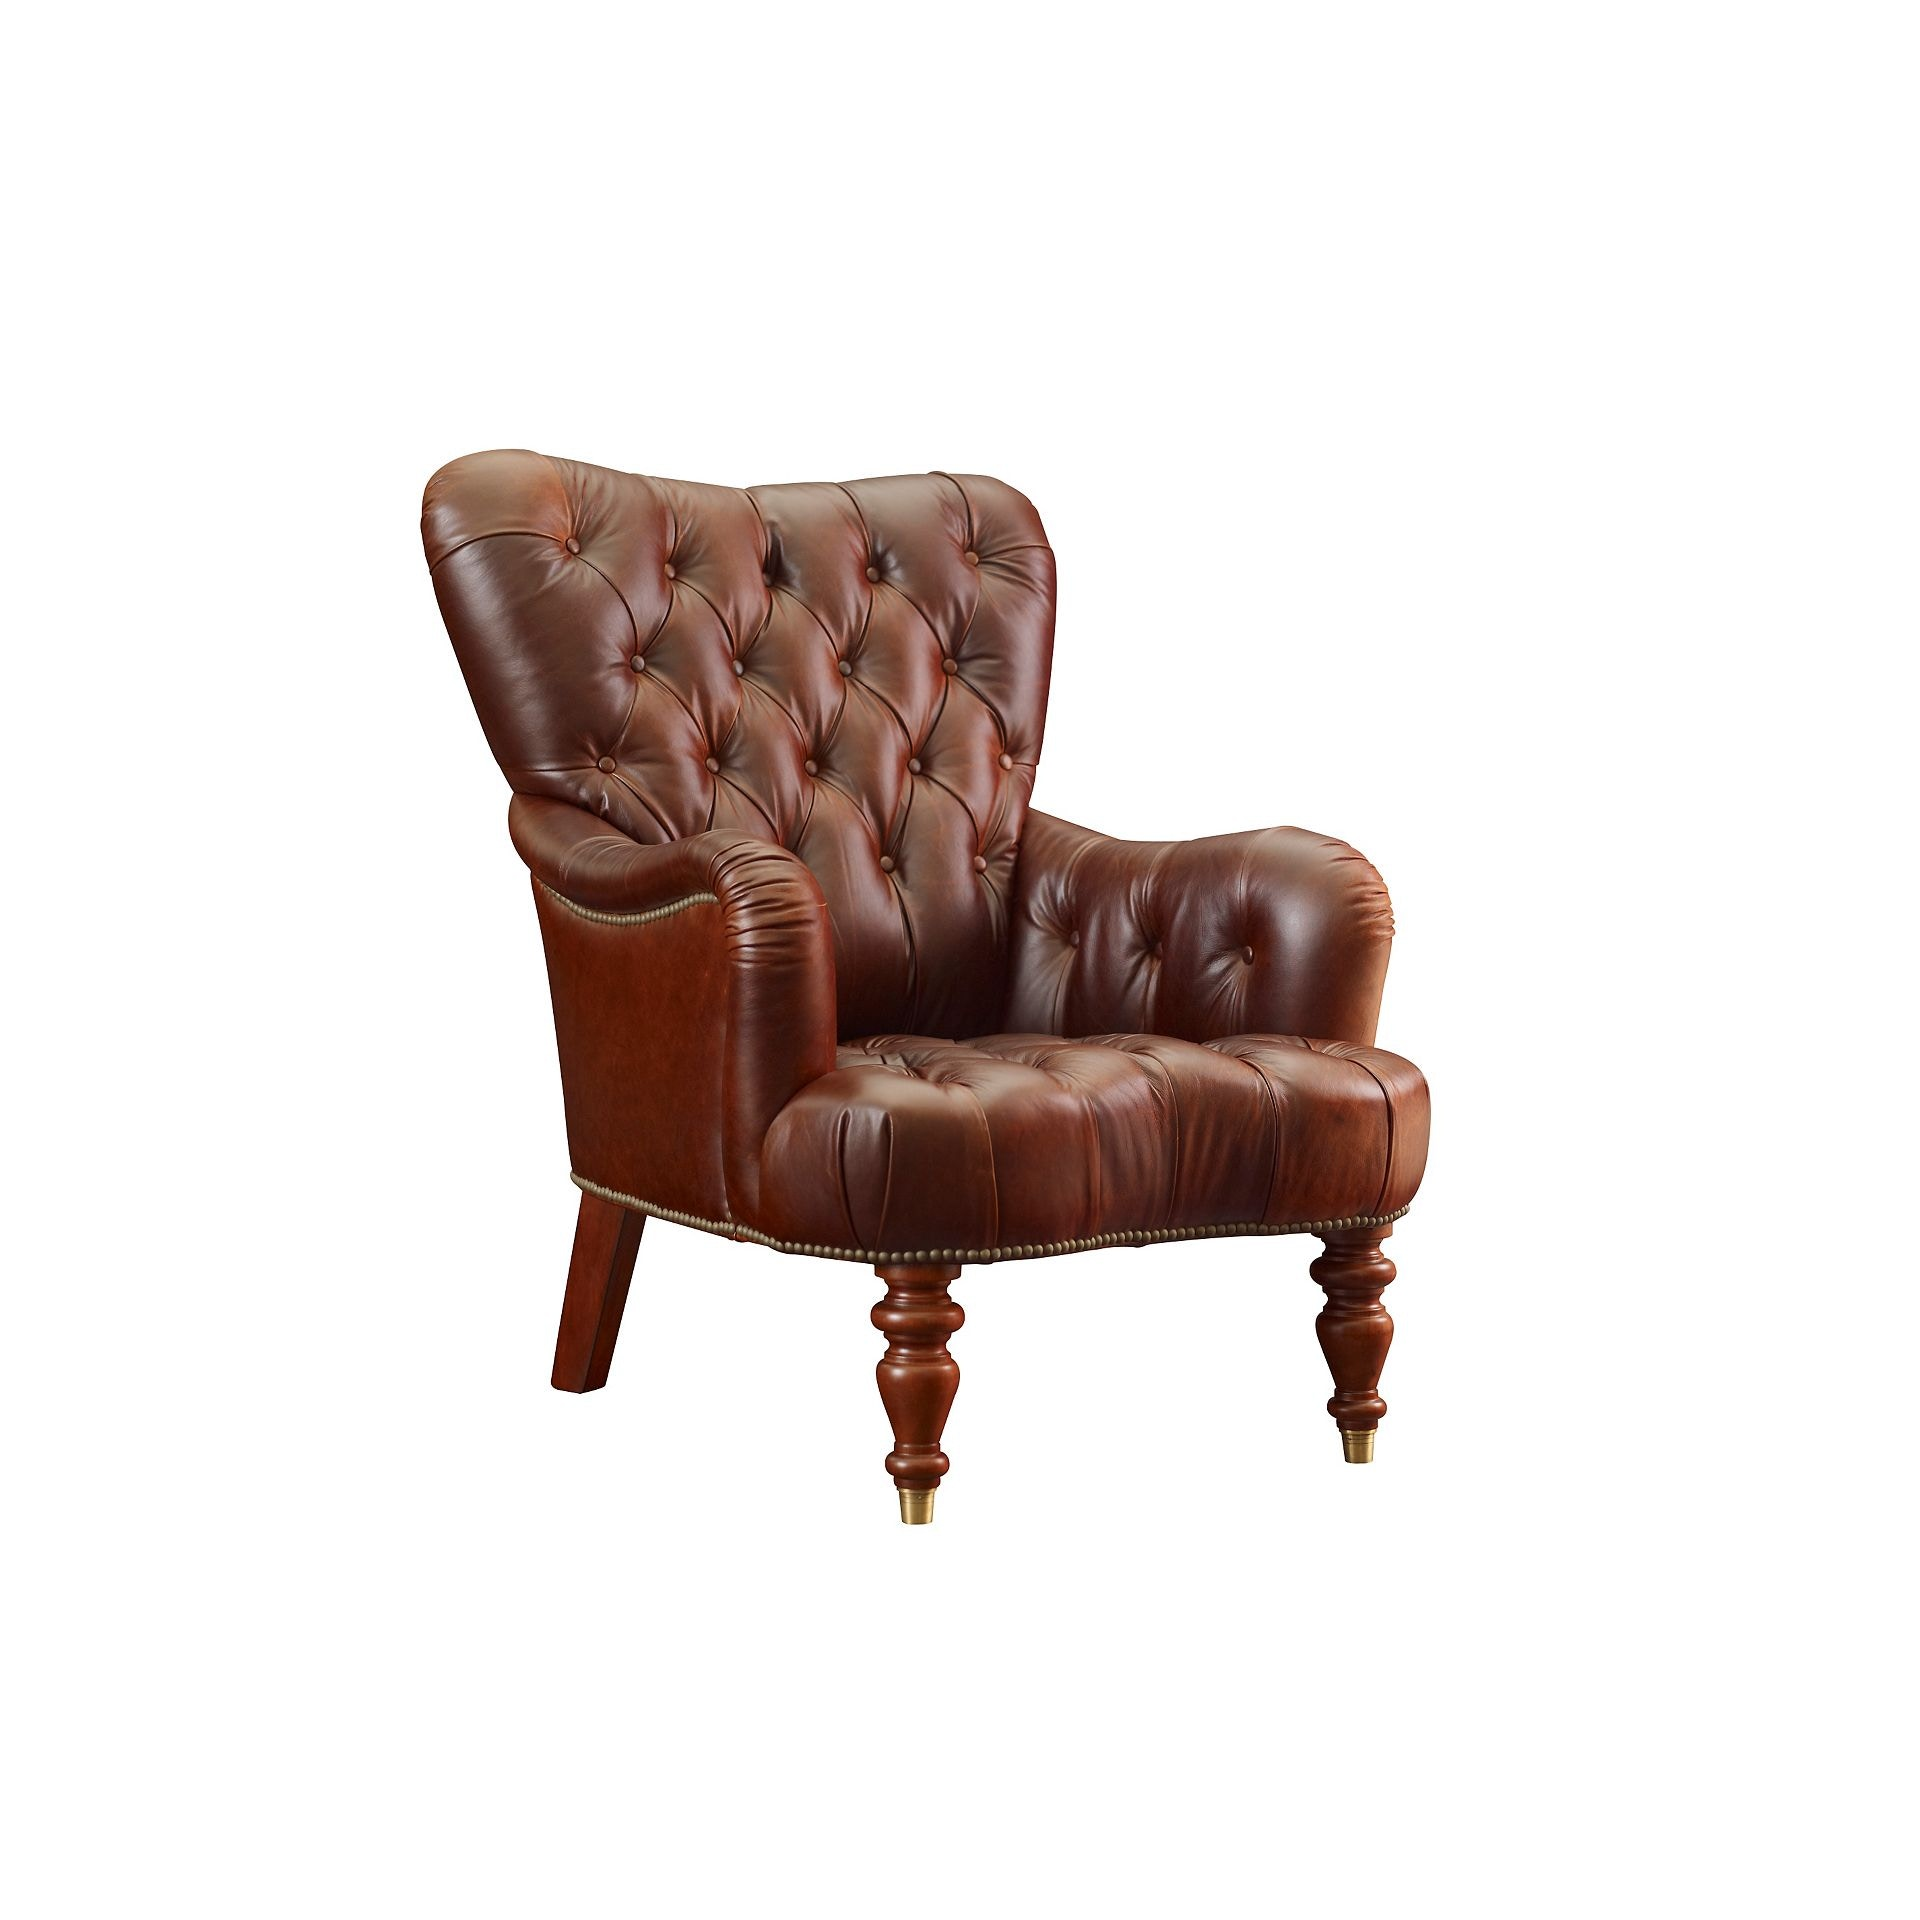 Henredon Furniture Henredon Leather Company Hamana Chair IL8869